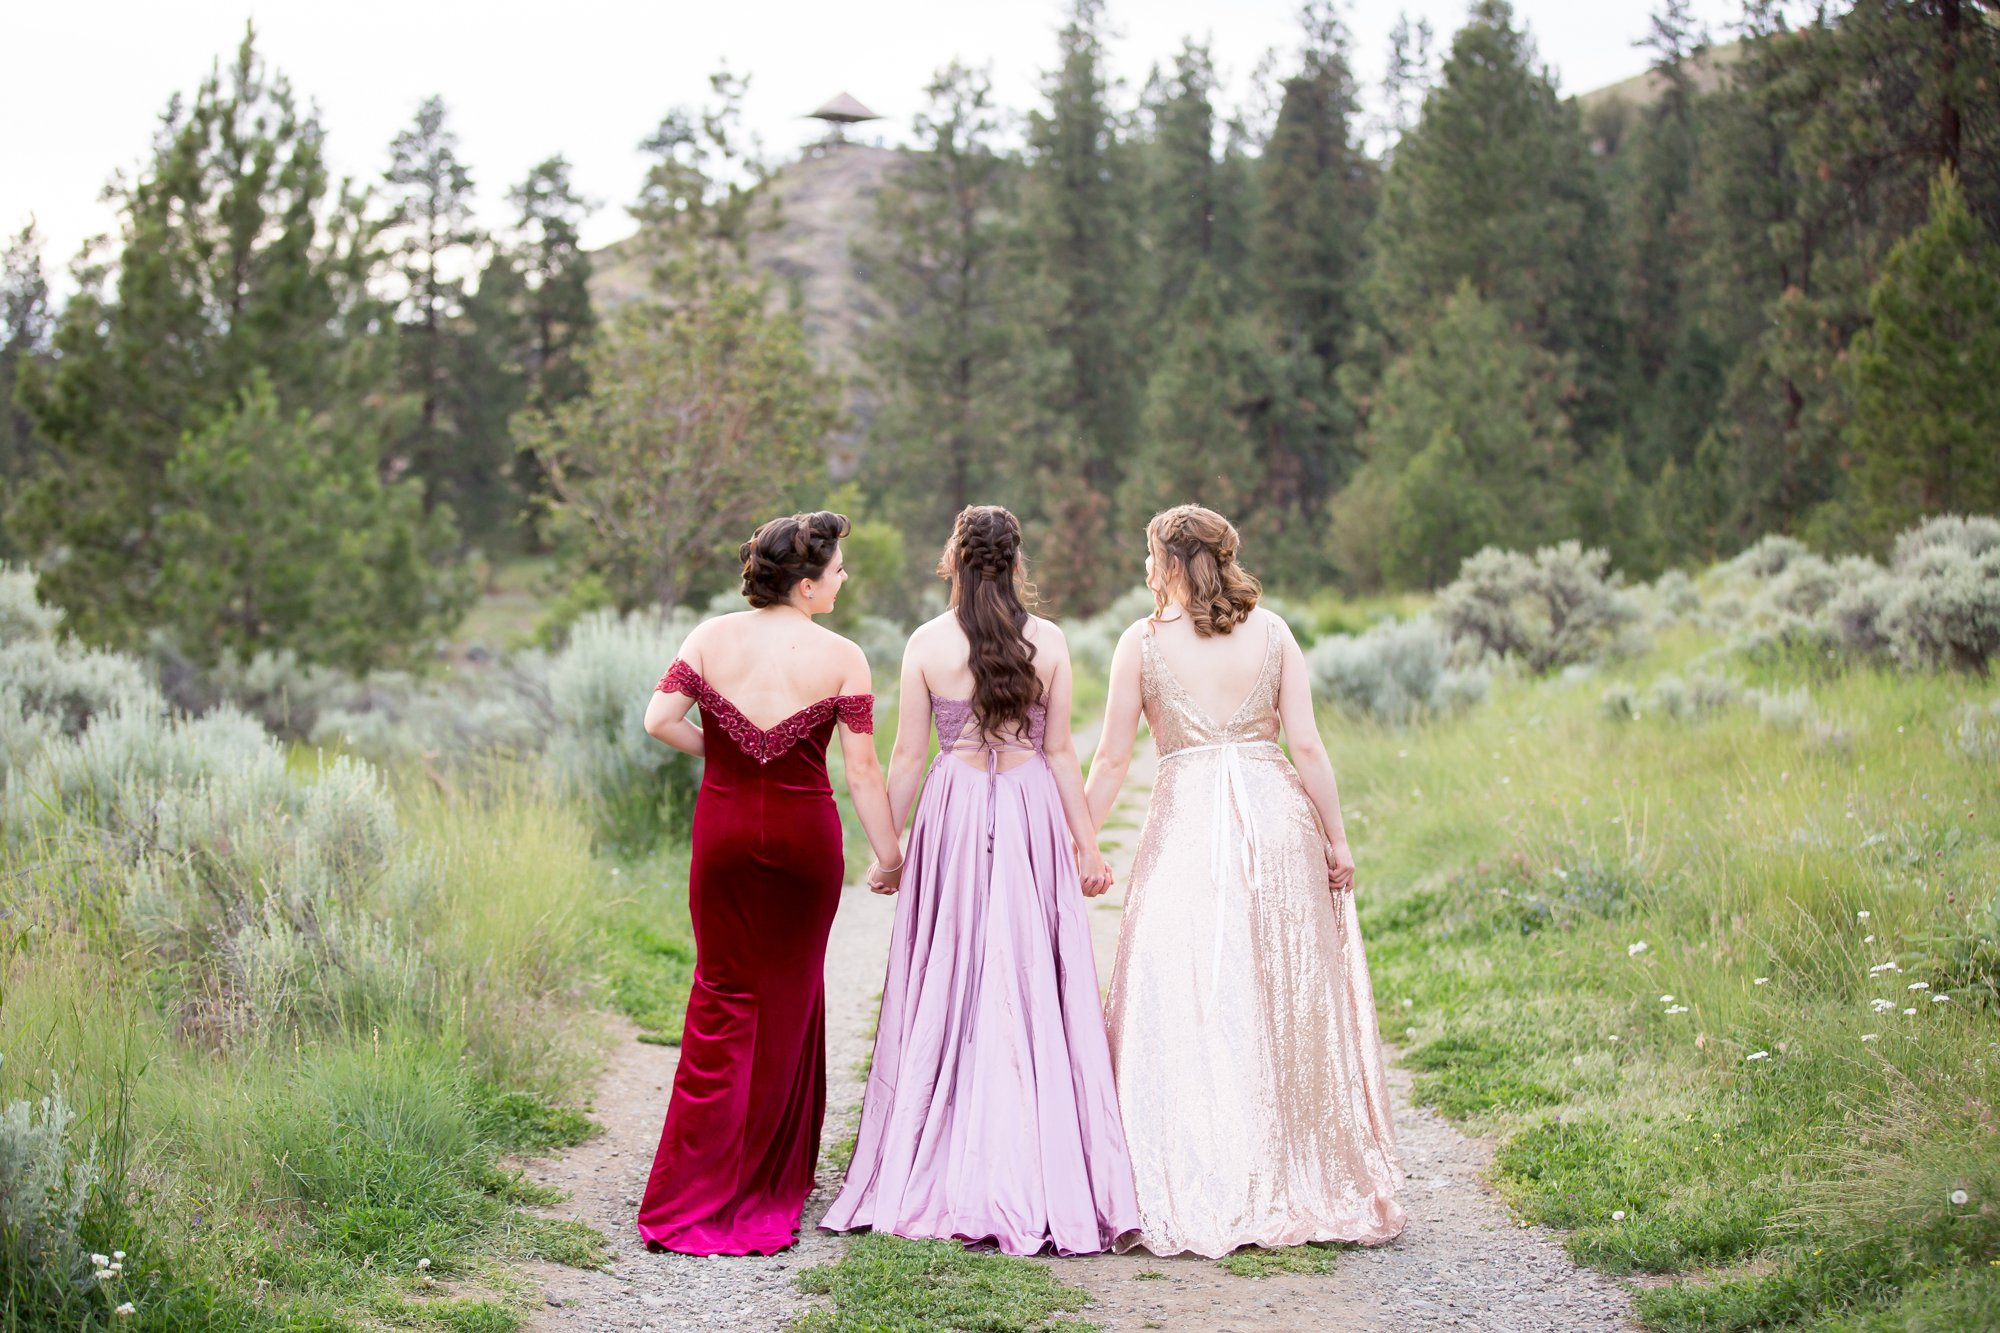 A grad and her two freinds walking away in their grad dresses